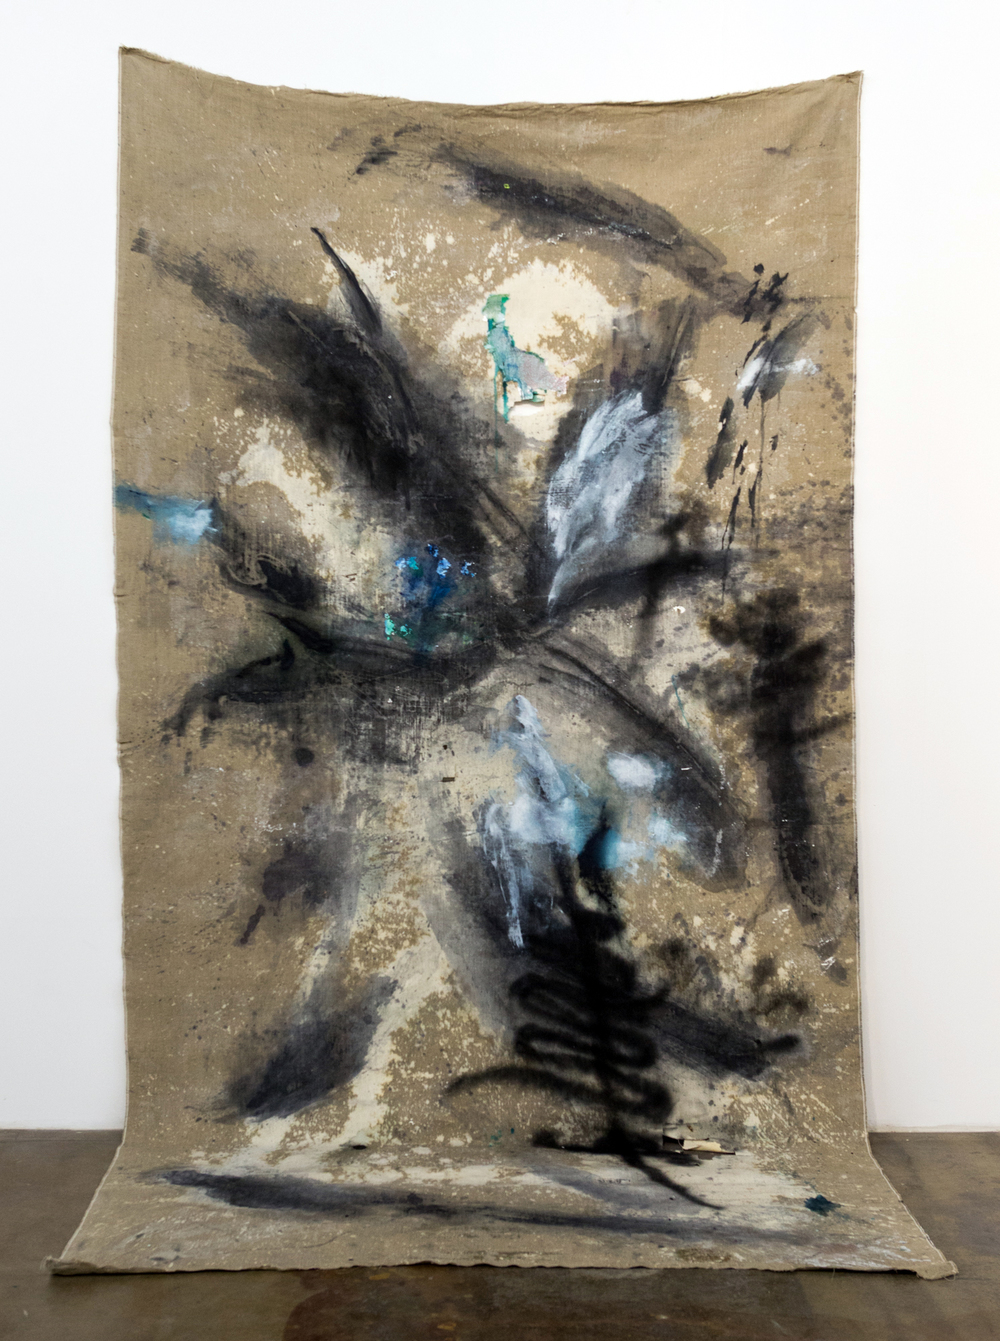 MLSL_05_Malice  , 2015  Oil, acrylic, bleach, drywall, lead and spray paint on linen  135 x 71.5 in (342.9 x 181.61 cm)